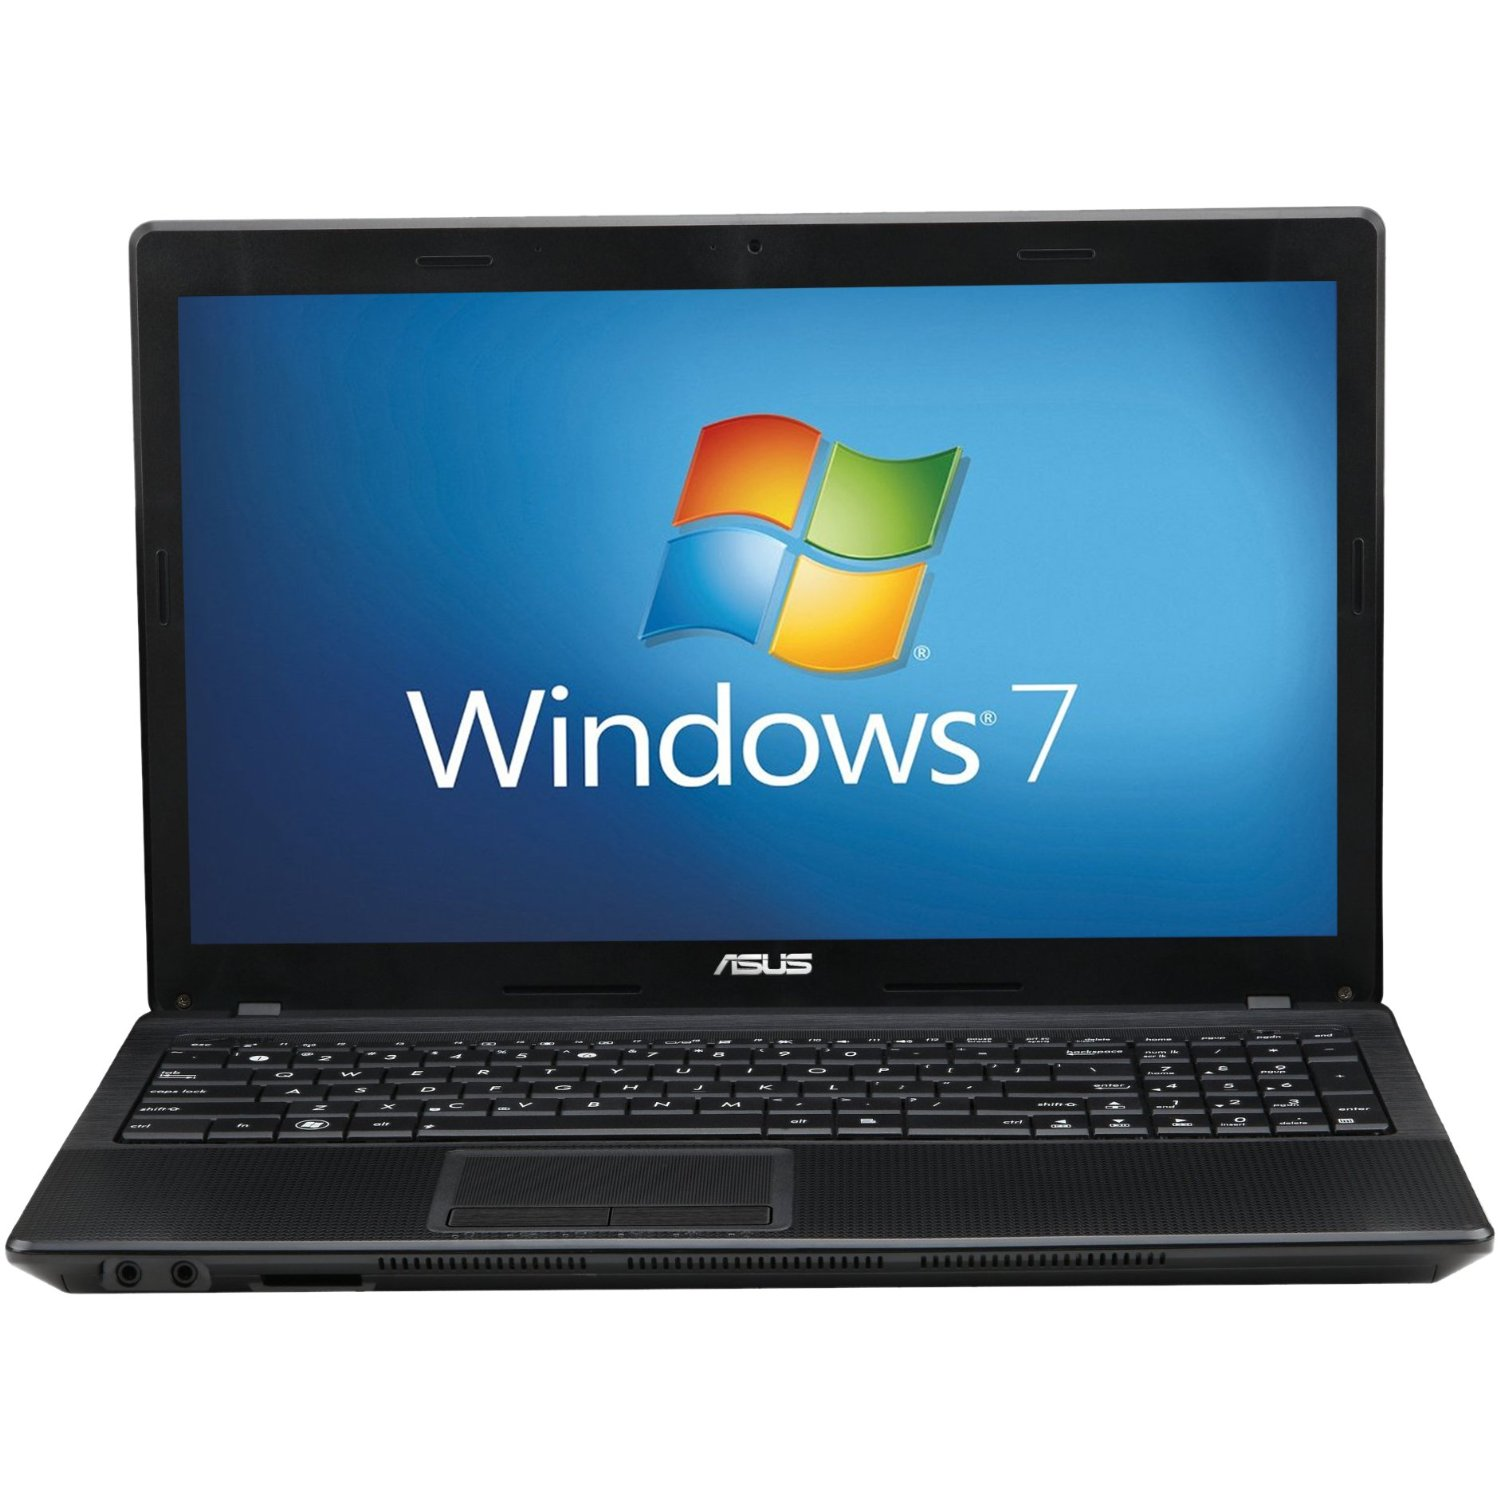 ASUS Wireless Drivers Download for Windows 7 10